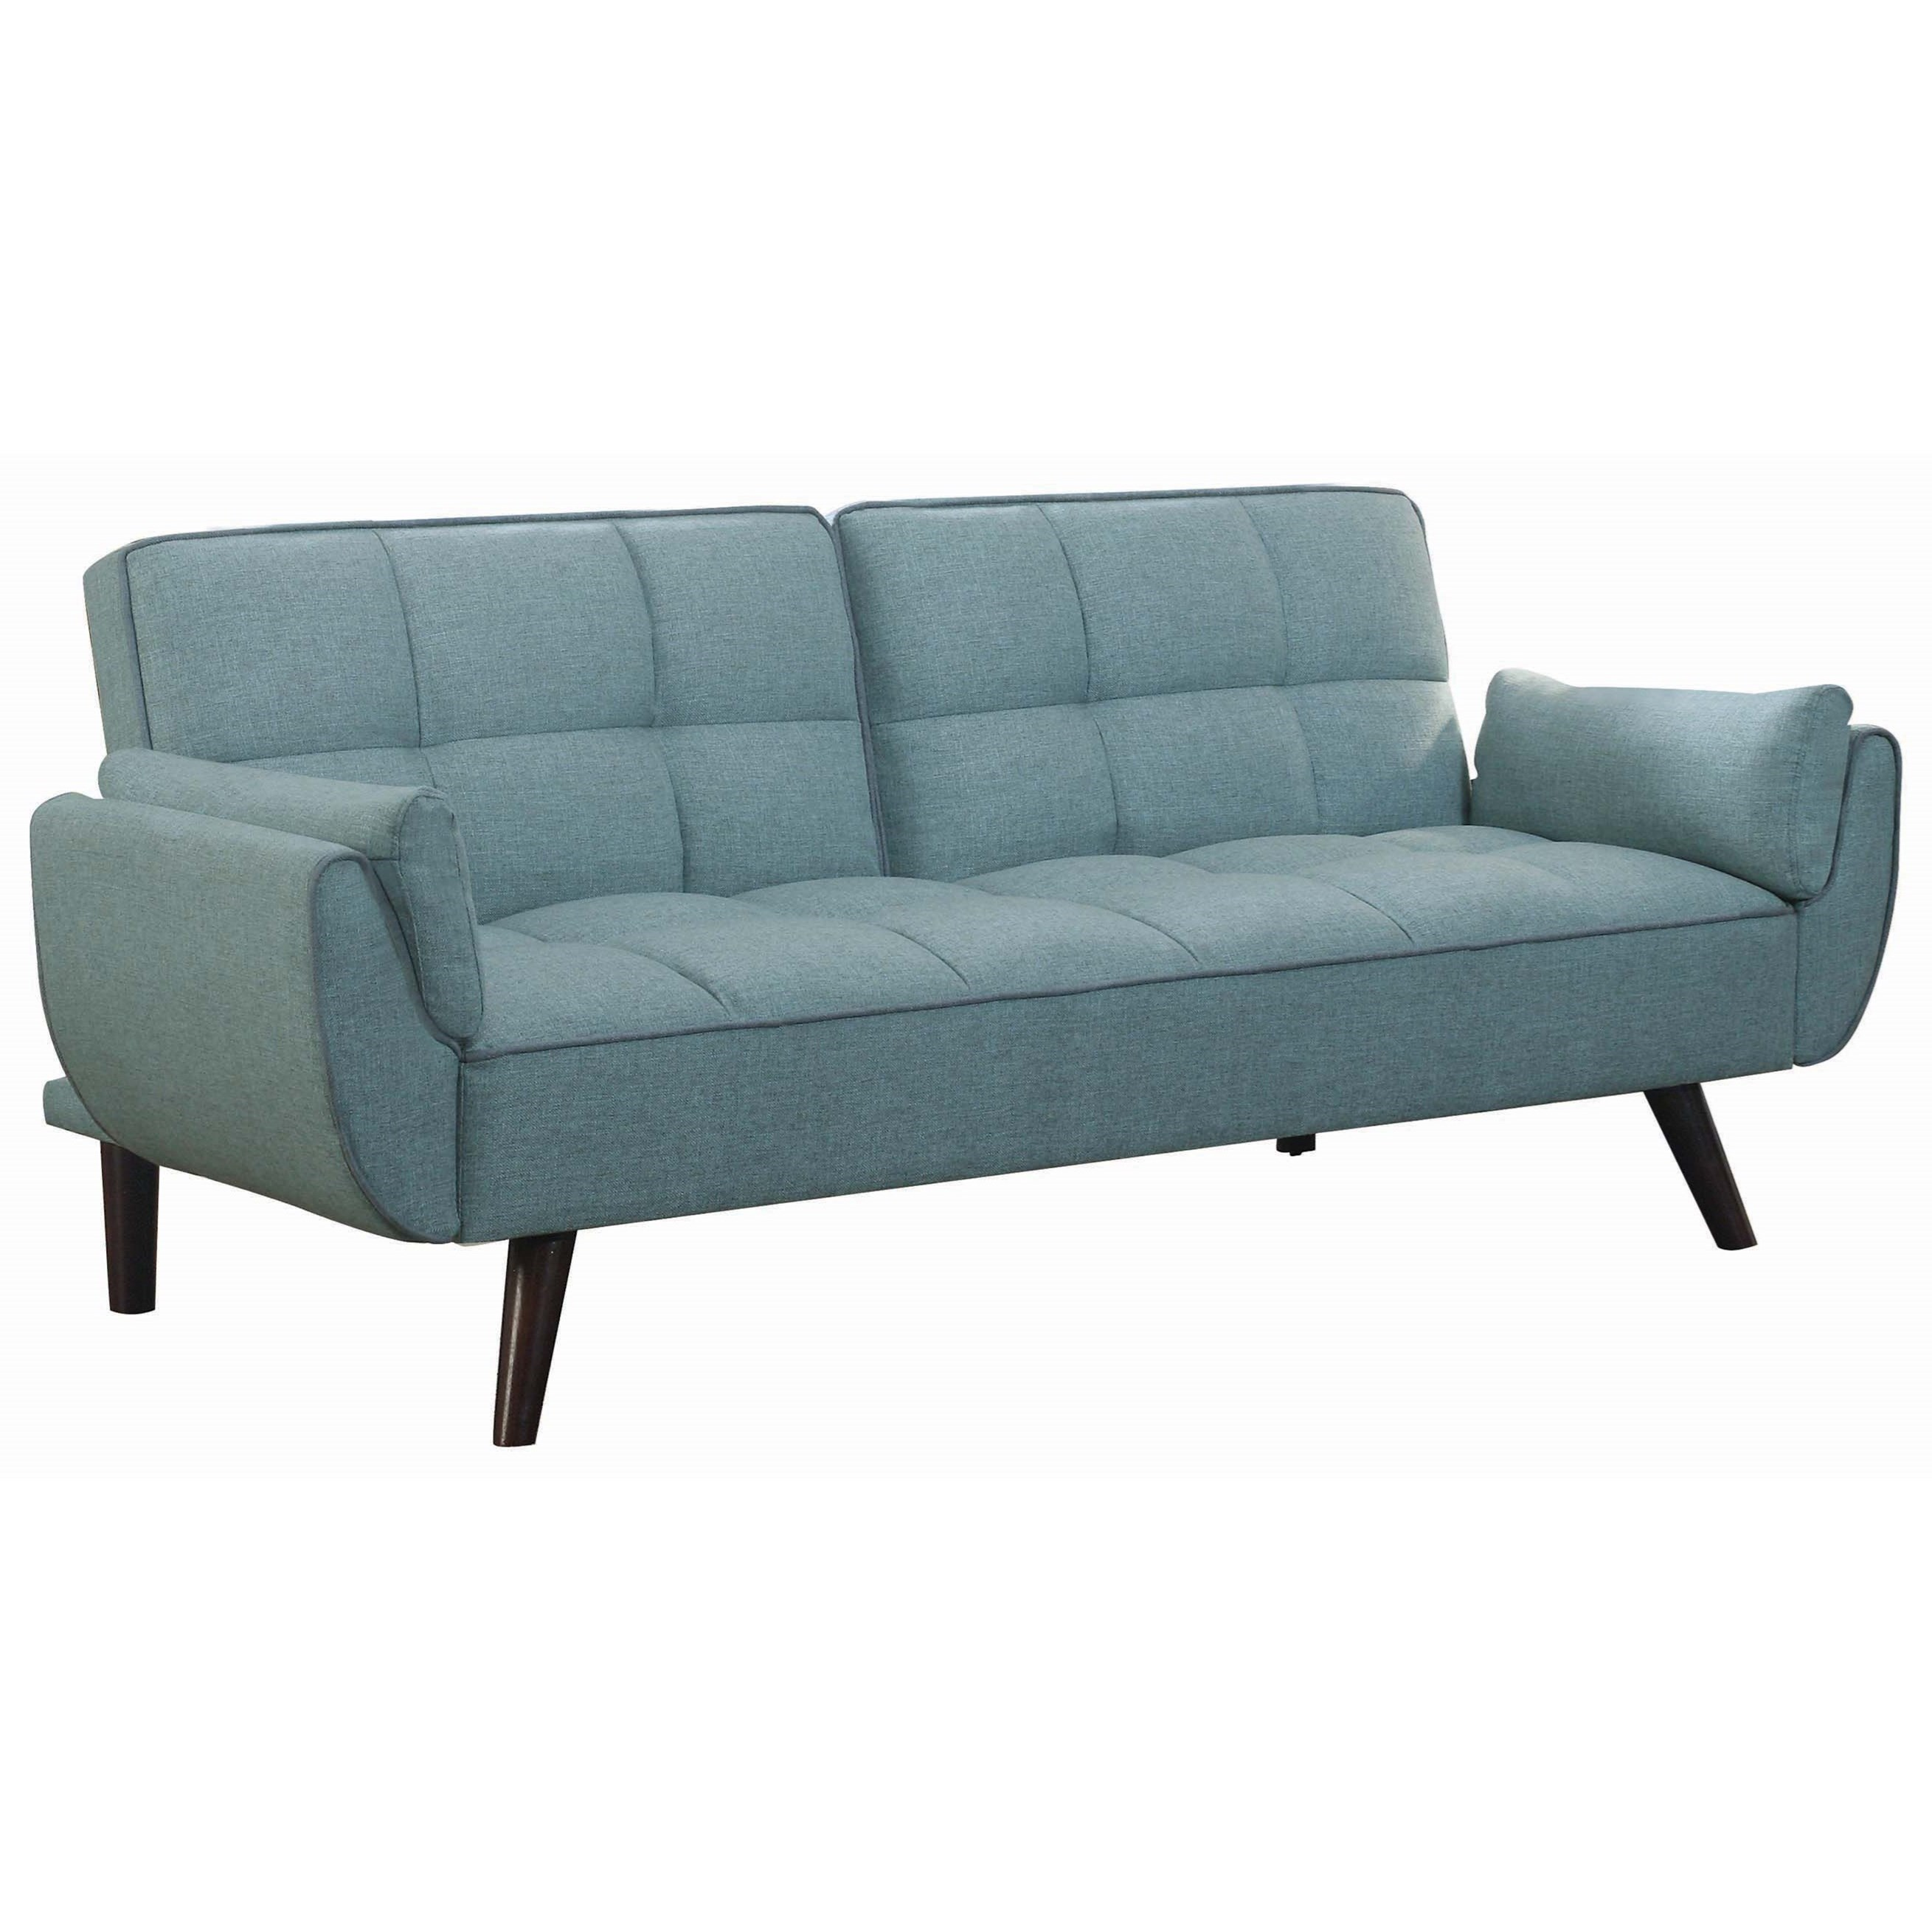 width of a sofa bed pull out scott living cheyenne modern belfort furniture futons